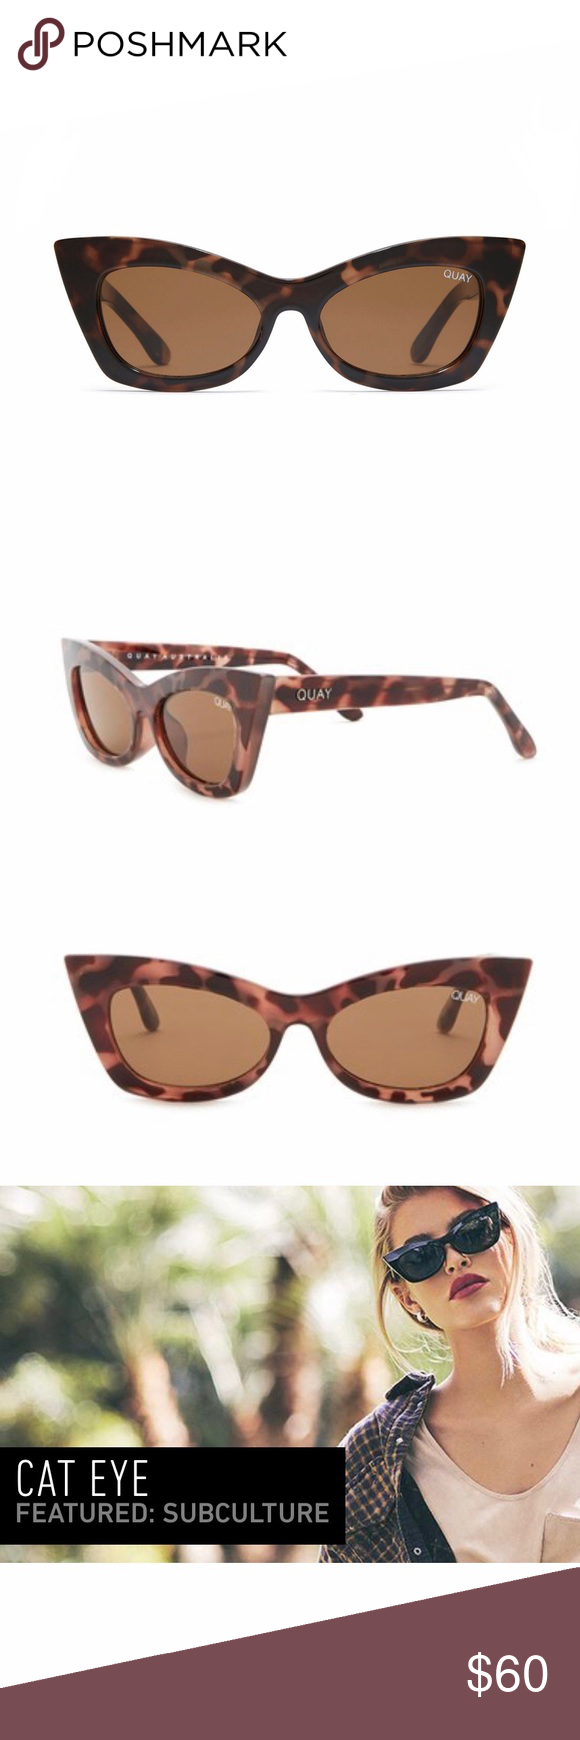 bf002e235c Quay Australia Subculture Sunglasses Channel a retro-inspired look with  this glamorous pair of cat